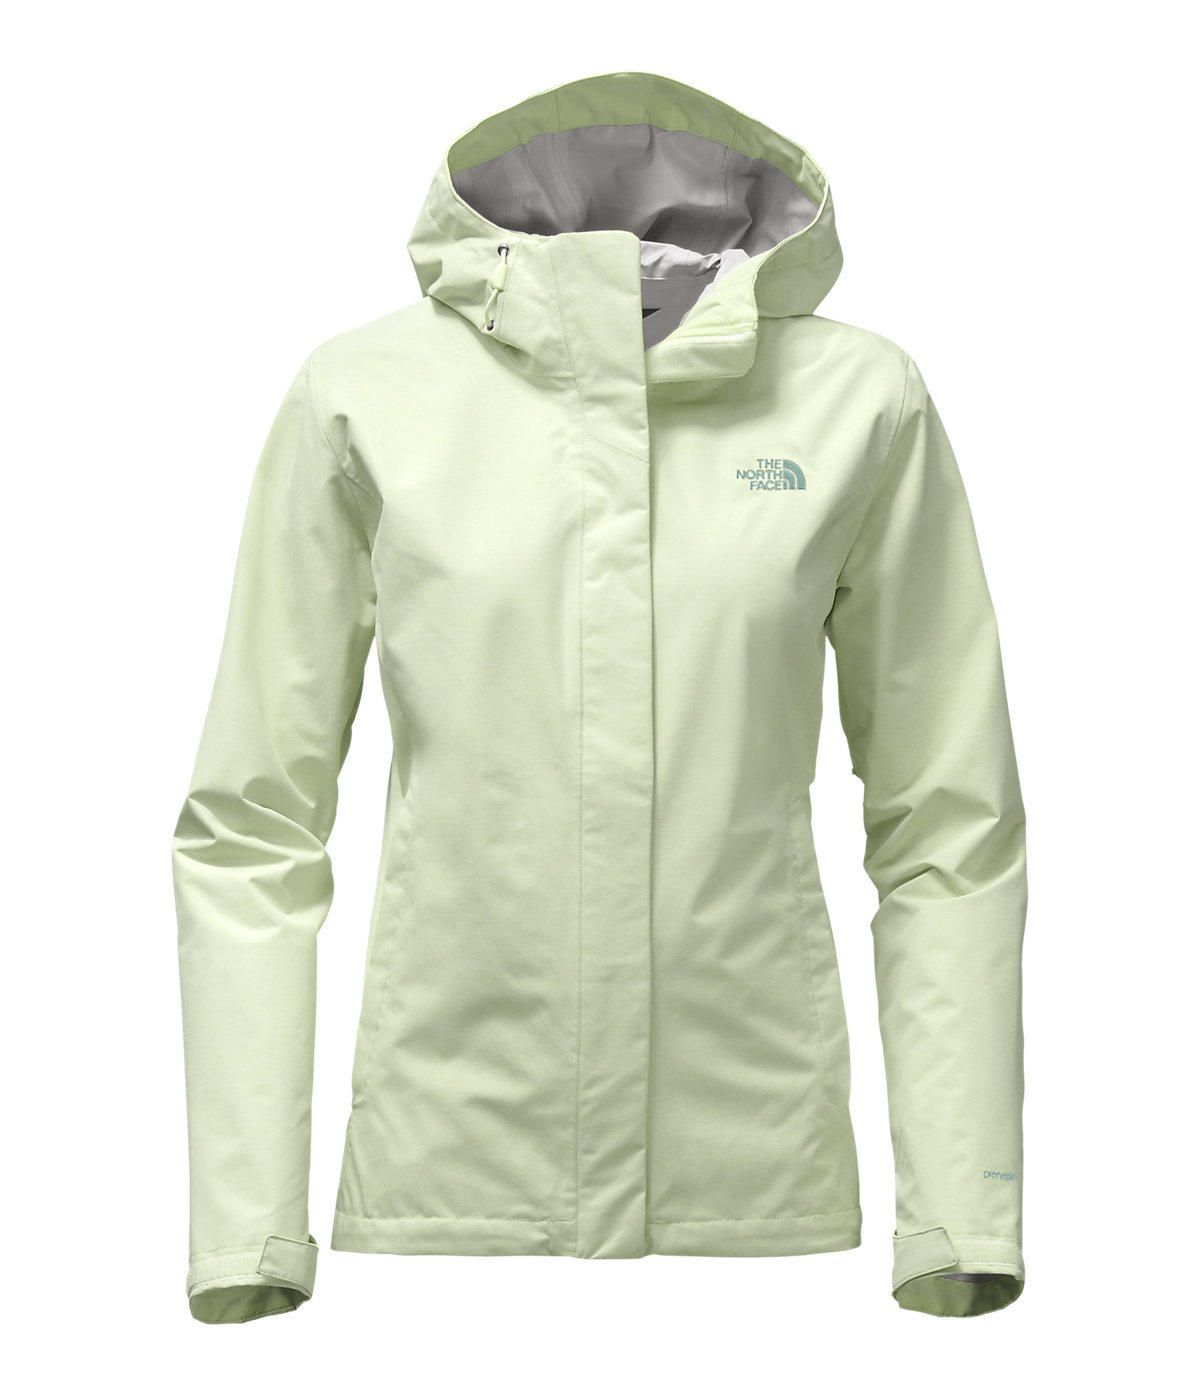 The North Face Women's Venture 2 Jacket Ambrosia Green Heather L by The North Face (Image #1)